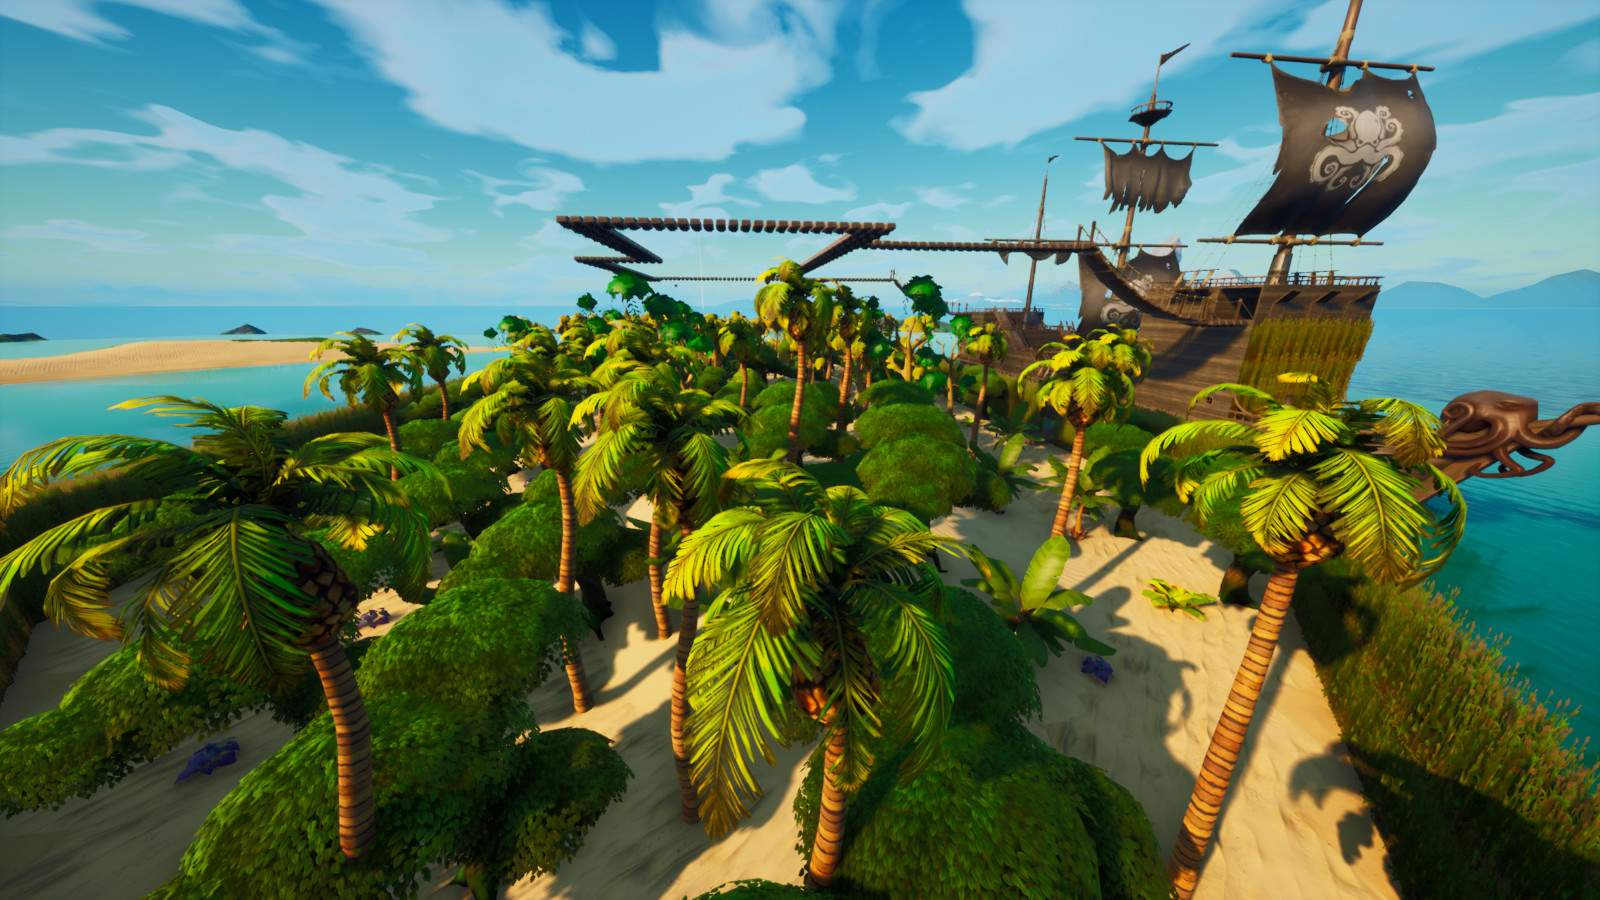 PIRATE ISLAND PROP HUNT